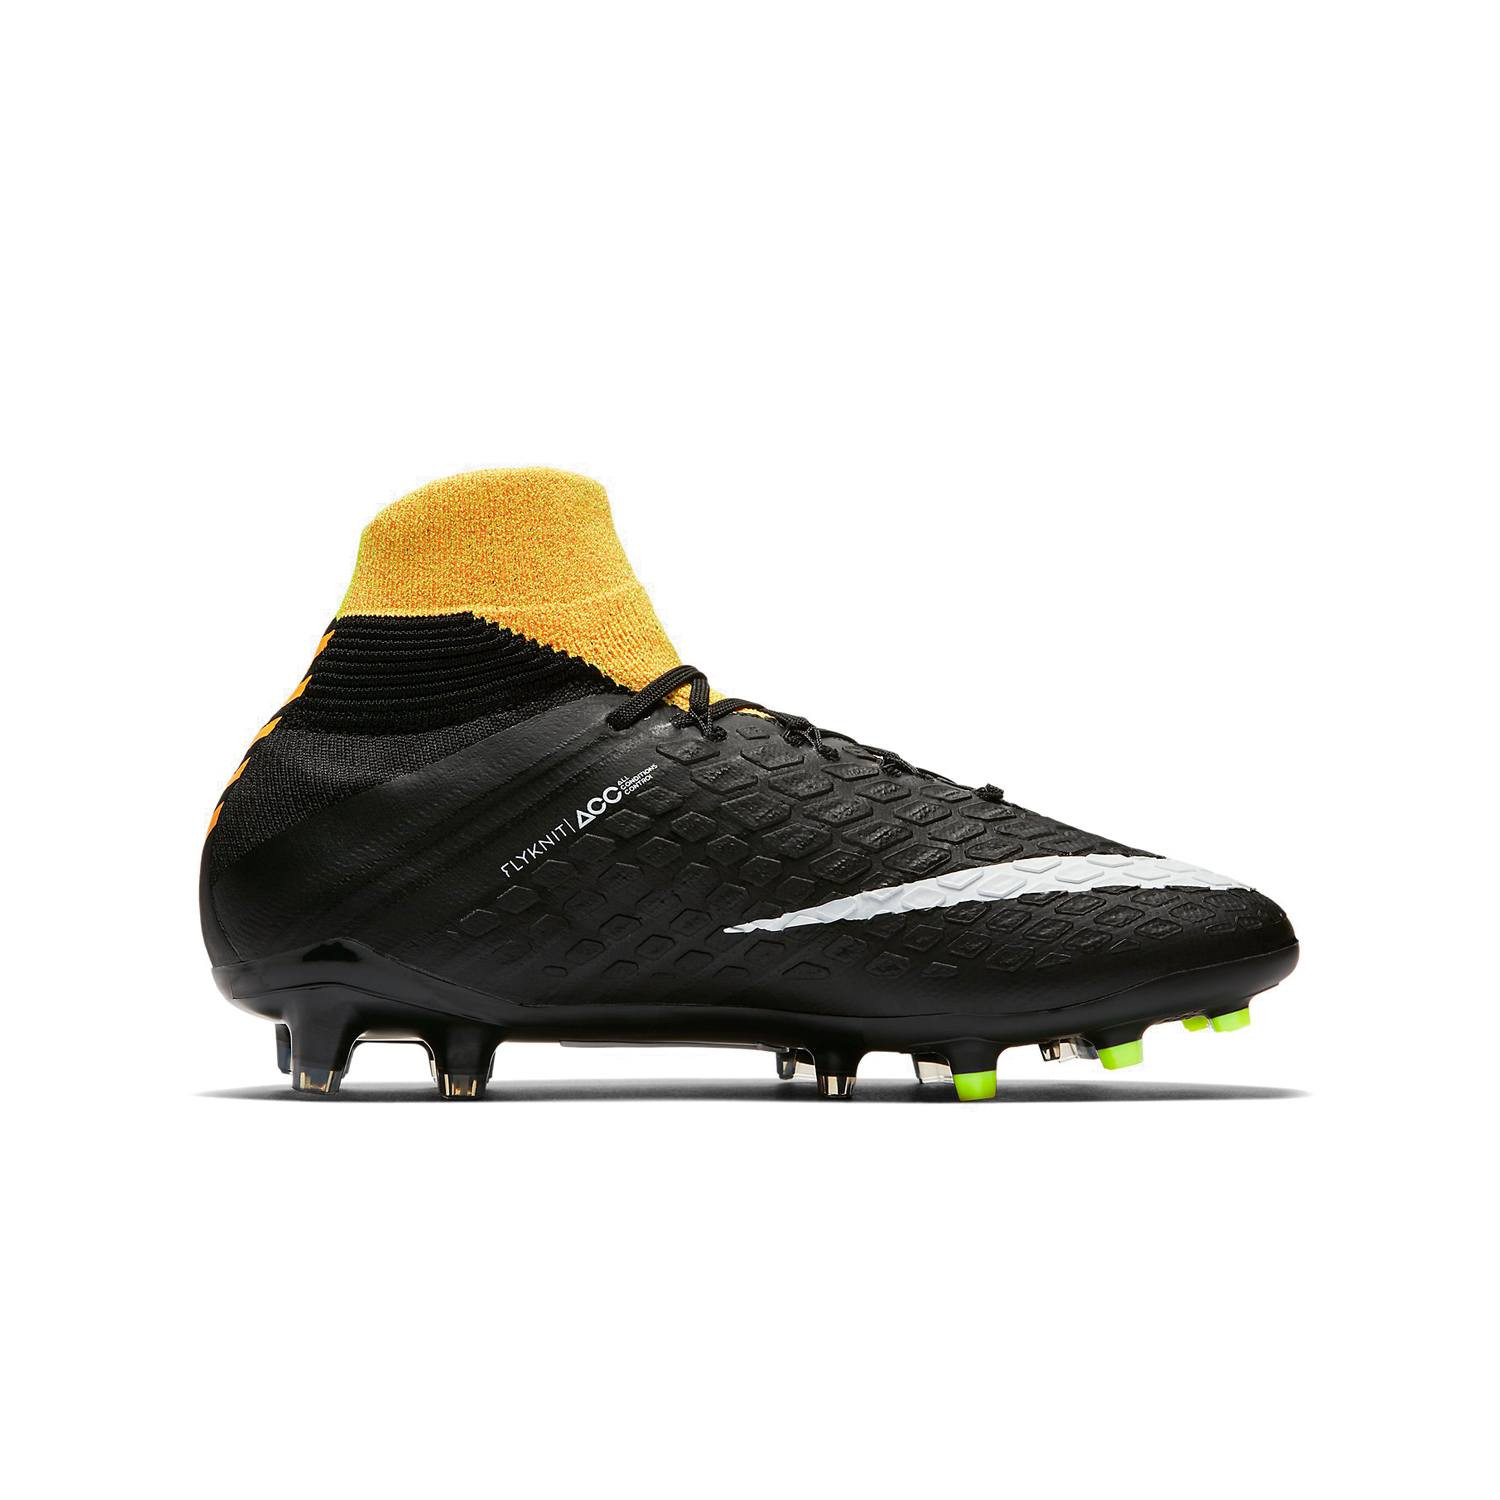 "Nike JR HYPERVENOM PHANTOM 3 DF FG ""Lock In Let Lo"